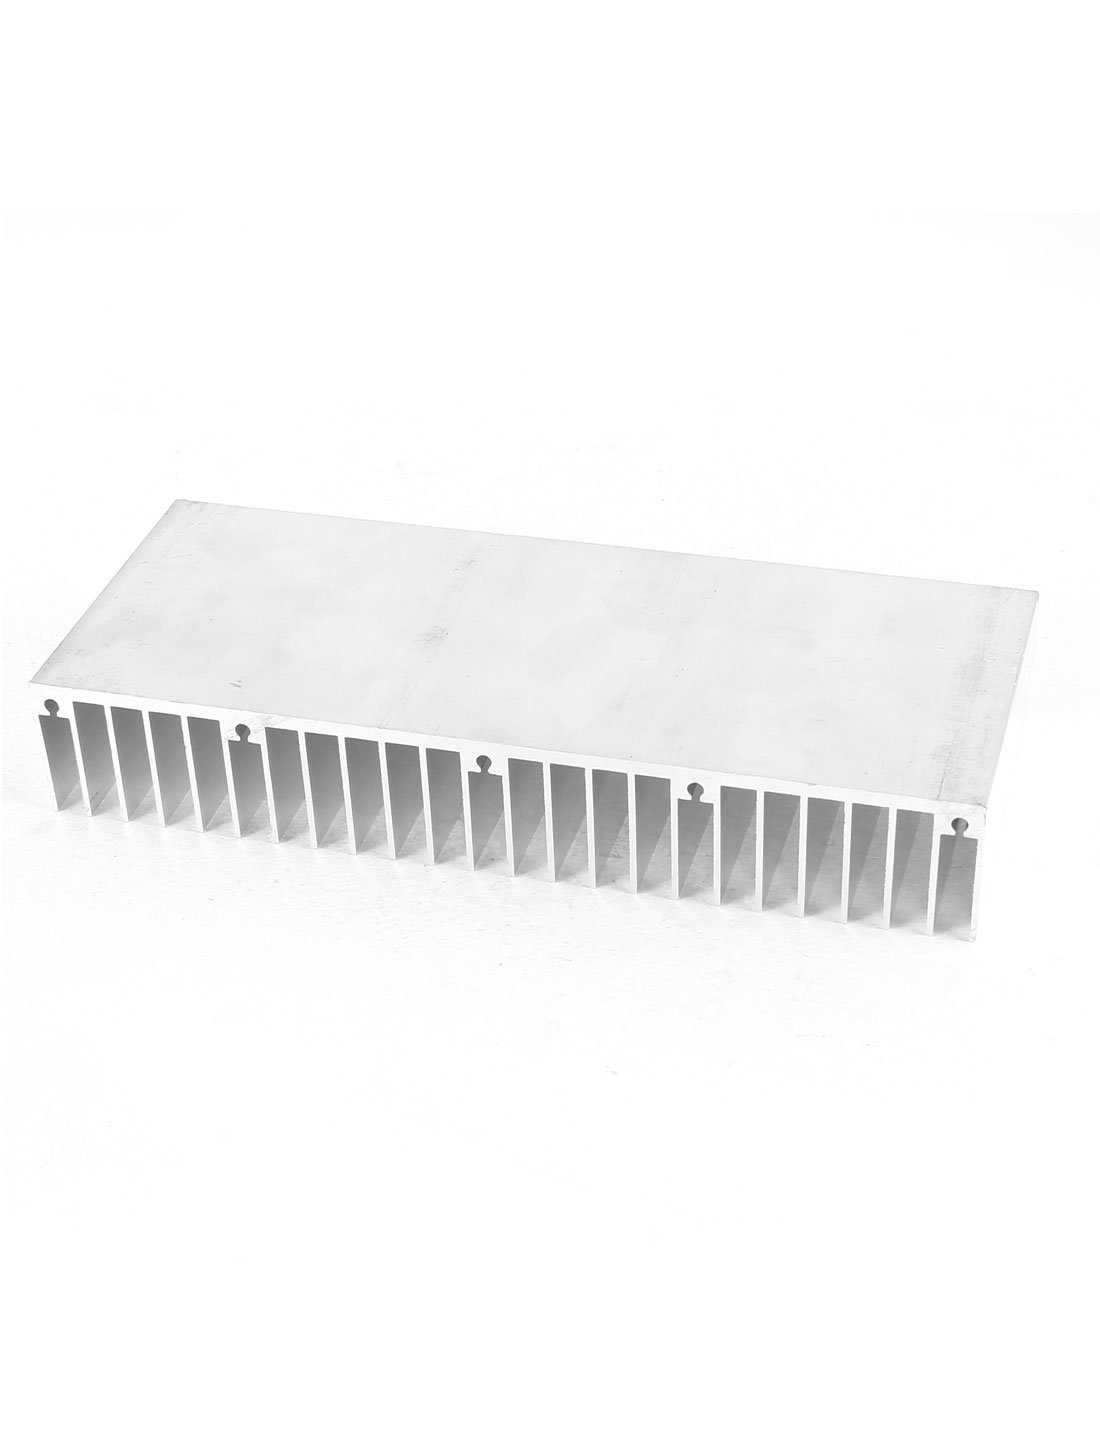 uxcell Aluminum Heatsink Cooling Fin 150mmx60mmx25mm for Power Amplifier by uxcell (Image #2)